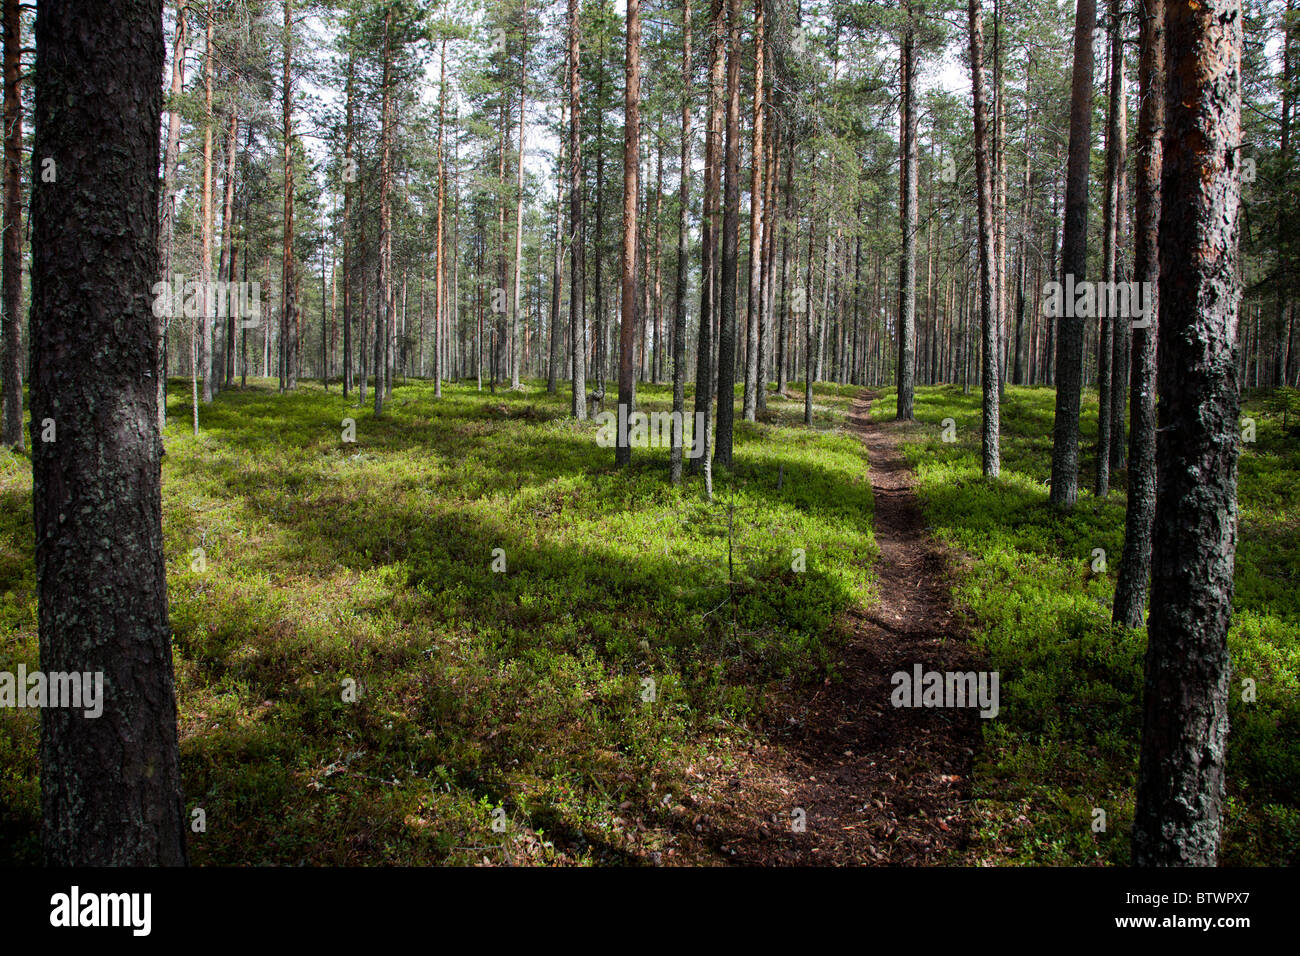 Footpath on Finnish pine ( pinus sylvestris ) forest on dry esker based soil , undergrowth consists mainly blueberries - Stock Image